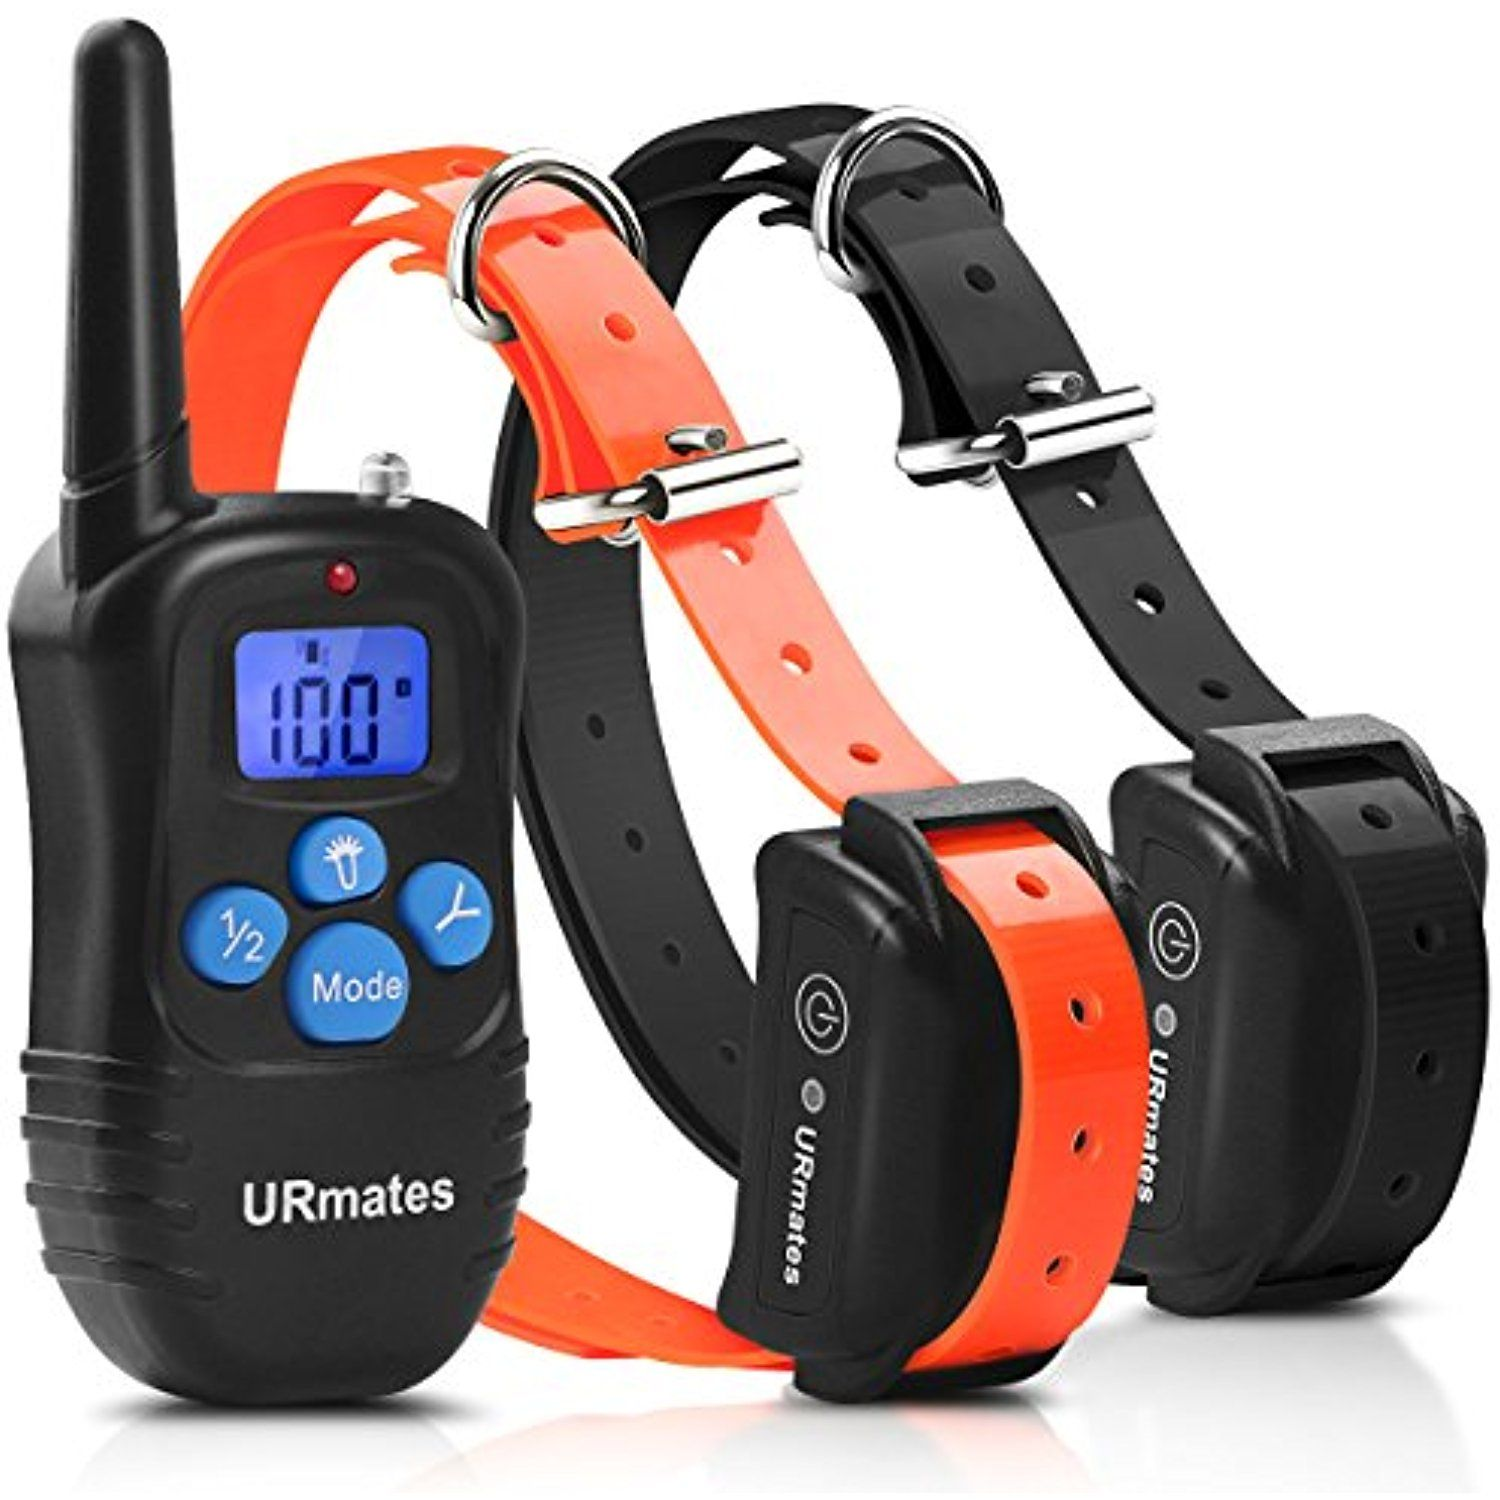 Urmates Upgrade Dog Training Collar With Remote Beep Vibration